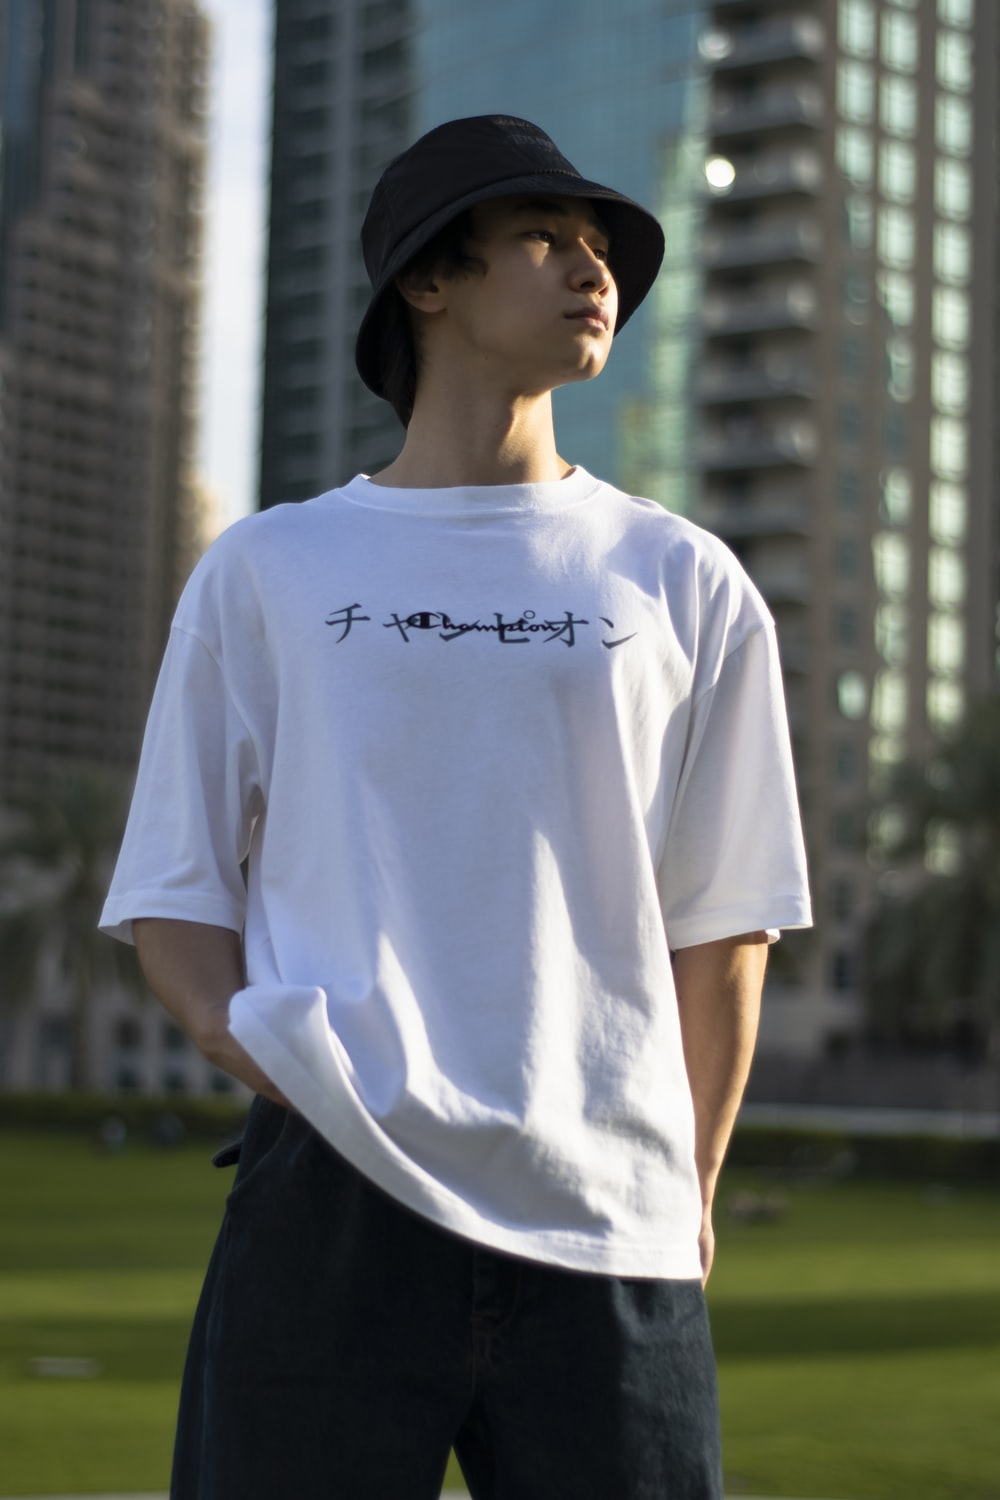 man in white crew neck t-shirt and black pants standing on green grass field during